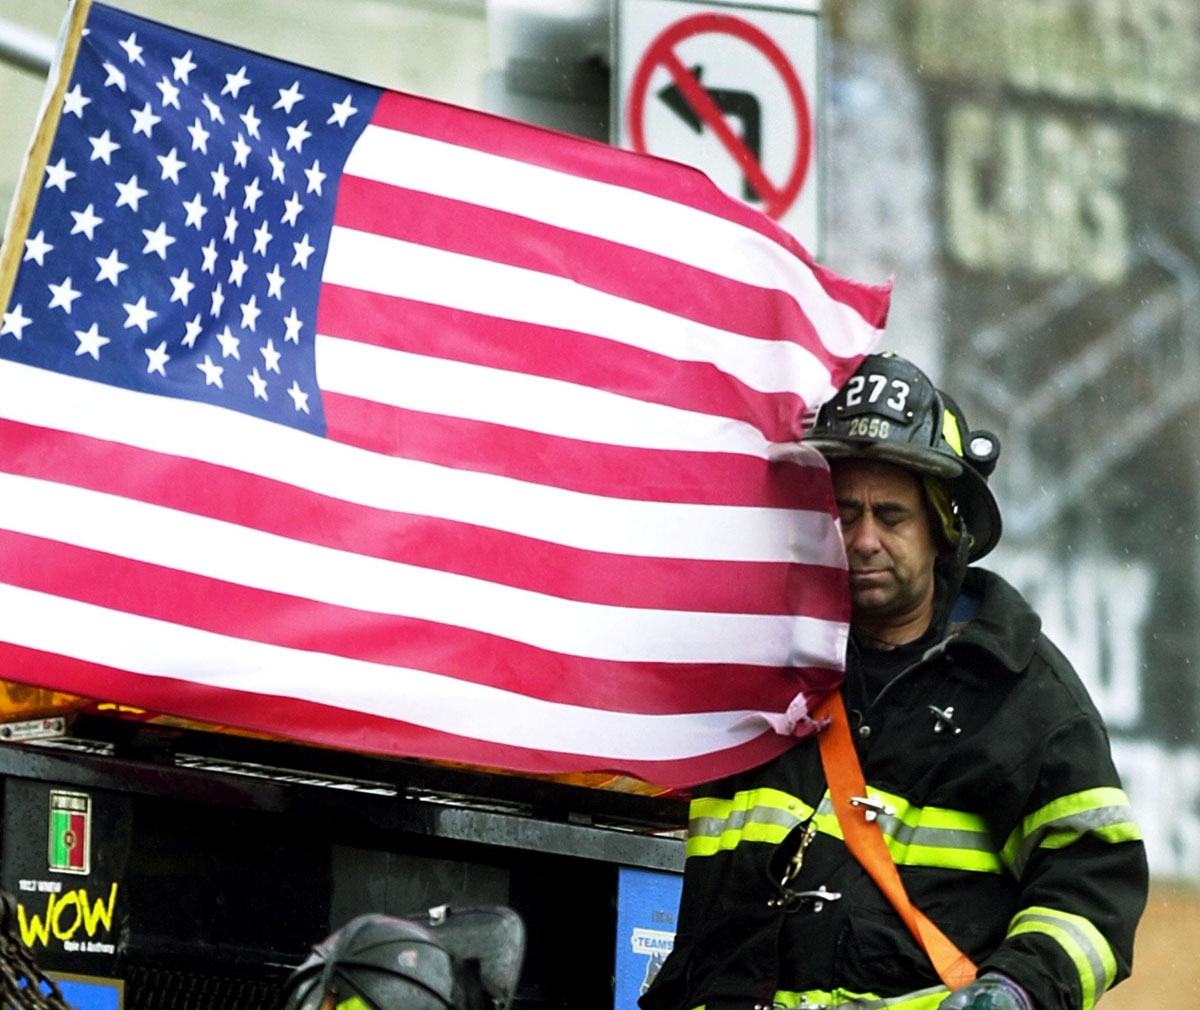 A tired fireman rests as he rides on the back of a flatbed truck 14 September 2001 in New York.